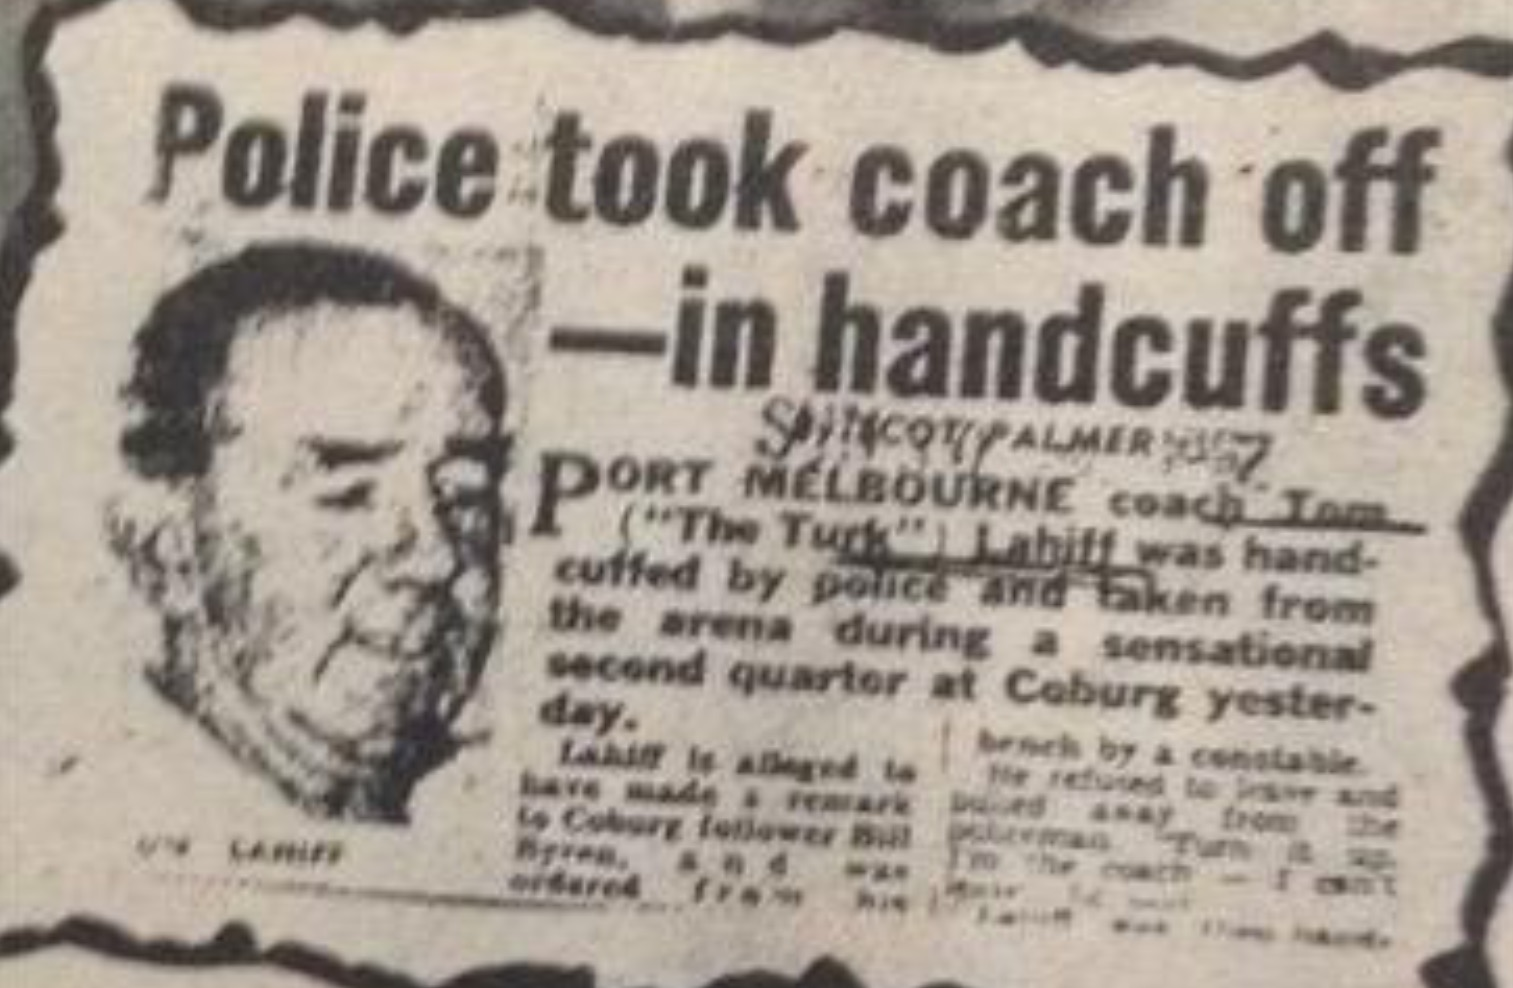 The day the footy coach was handcuffed - Sportshounds